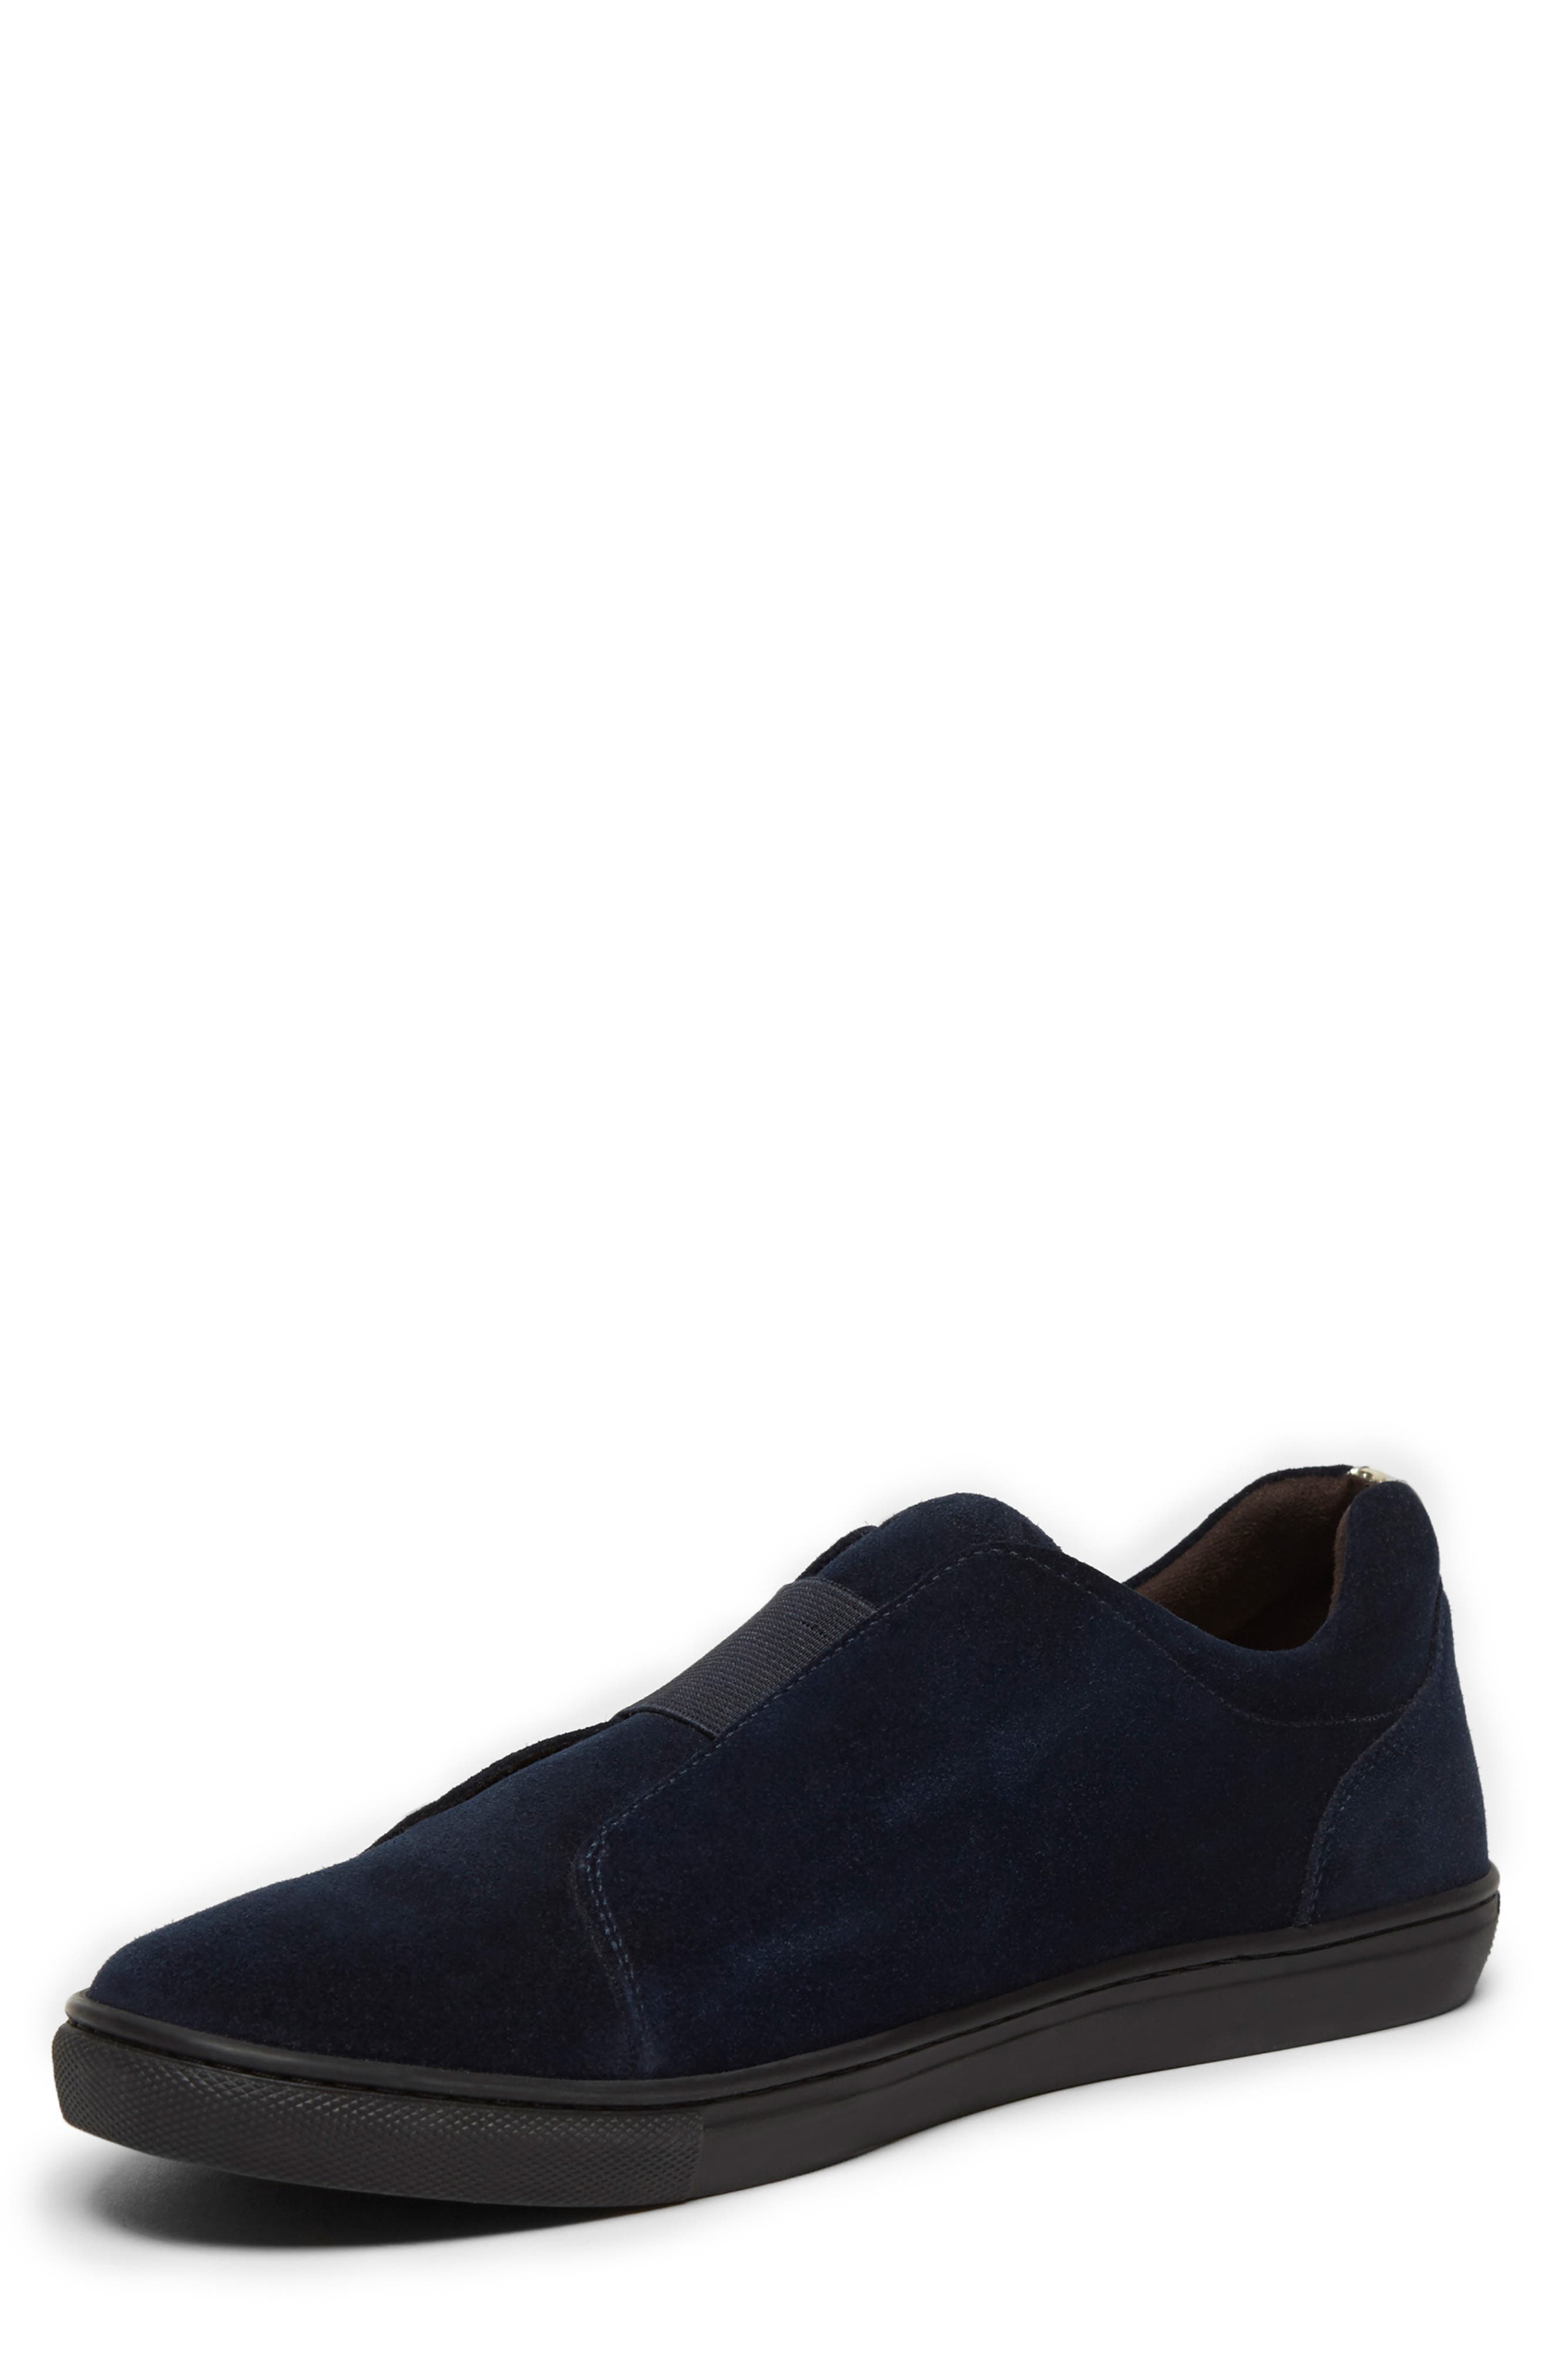 KENNETH COLE NEW YORK, Kam Slip-On, Alternate thumbnail 4, color, NAVY SUEDE